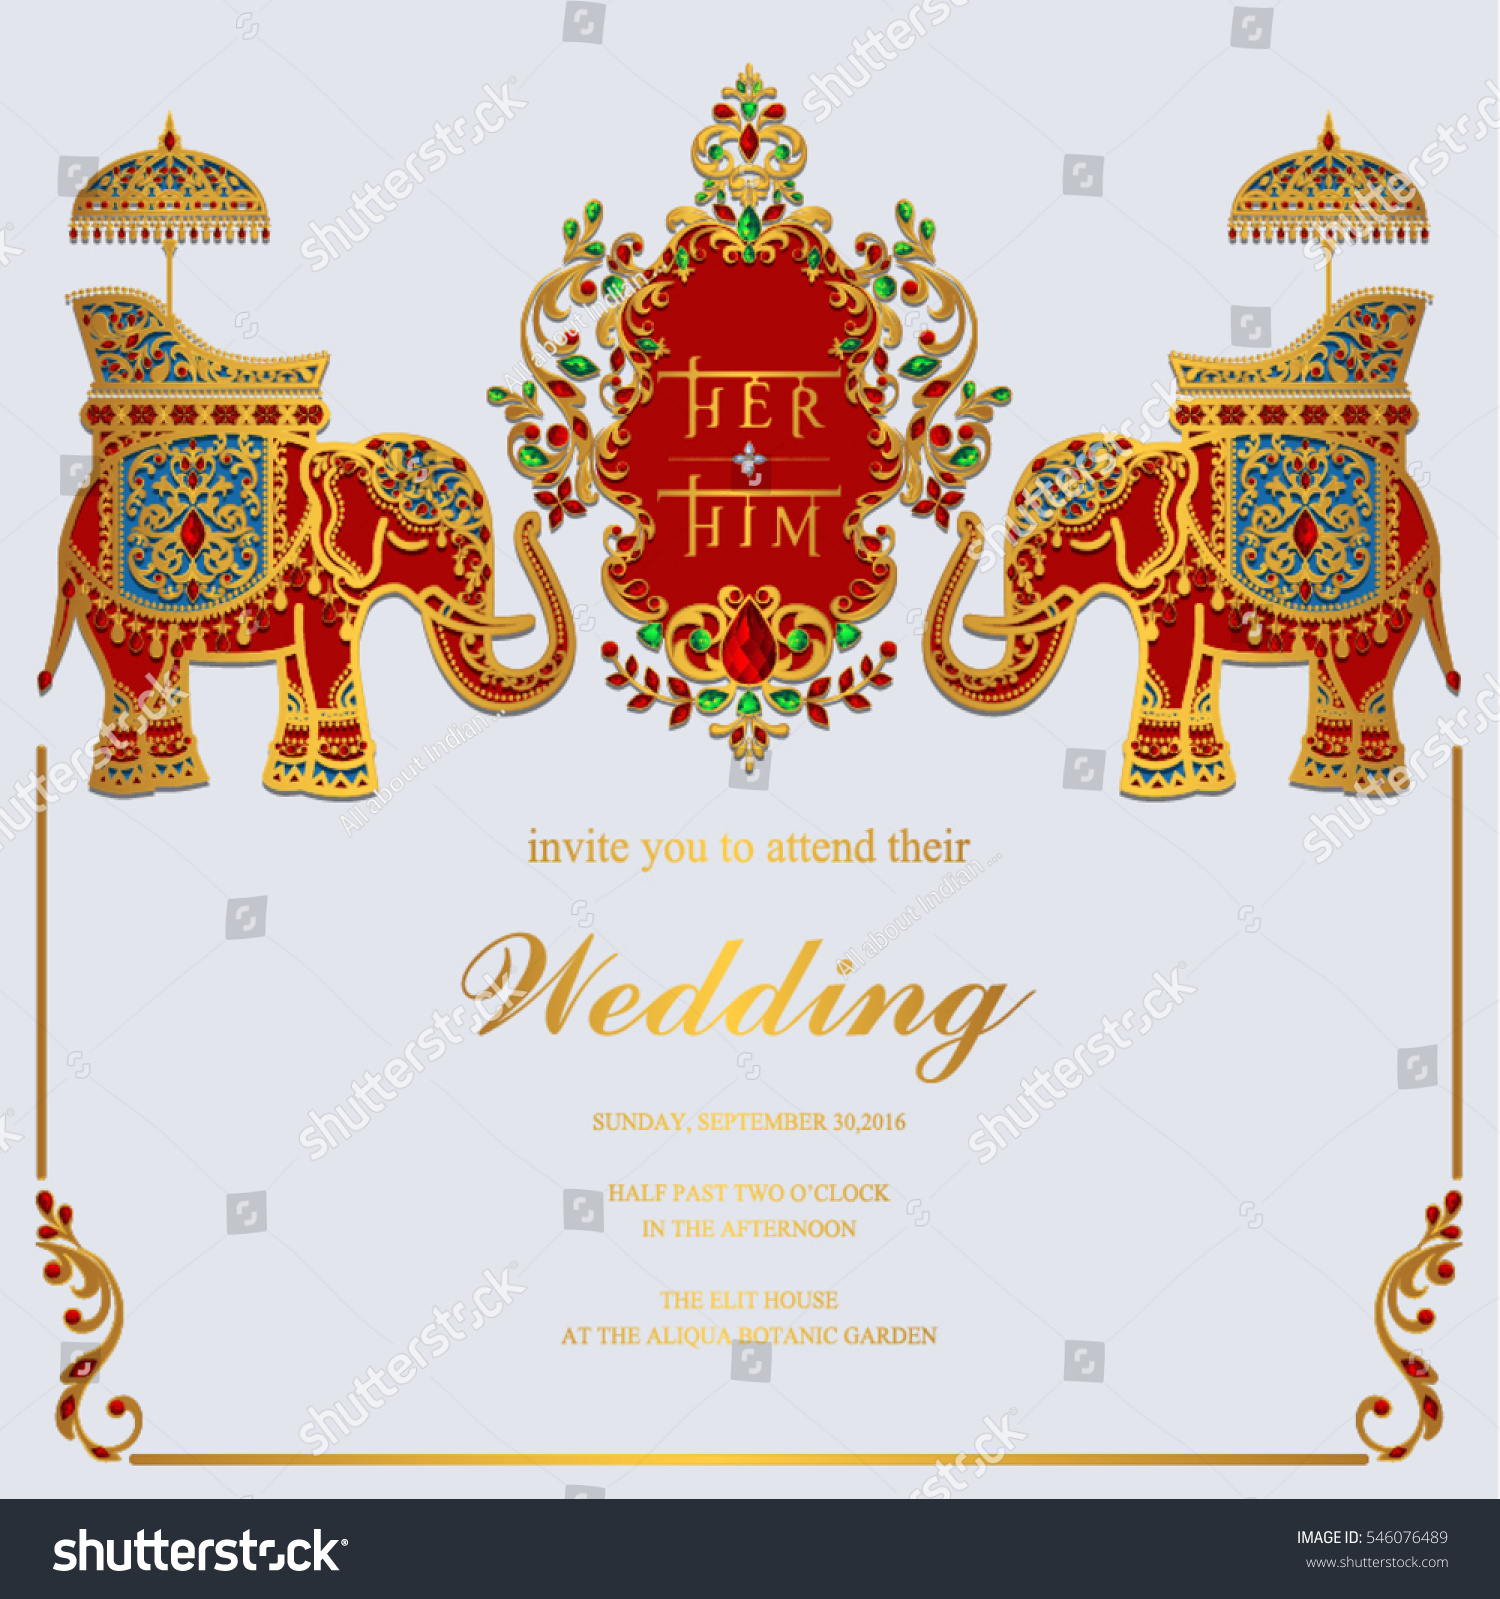 Indian Wedding Invitation Card Templates Gold Stock Vector Royalty Free 546076489 We provide millions of free to download high definition png images. https www shutterstock com image vector indian wedding invitation card templates gold 546076489